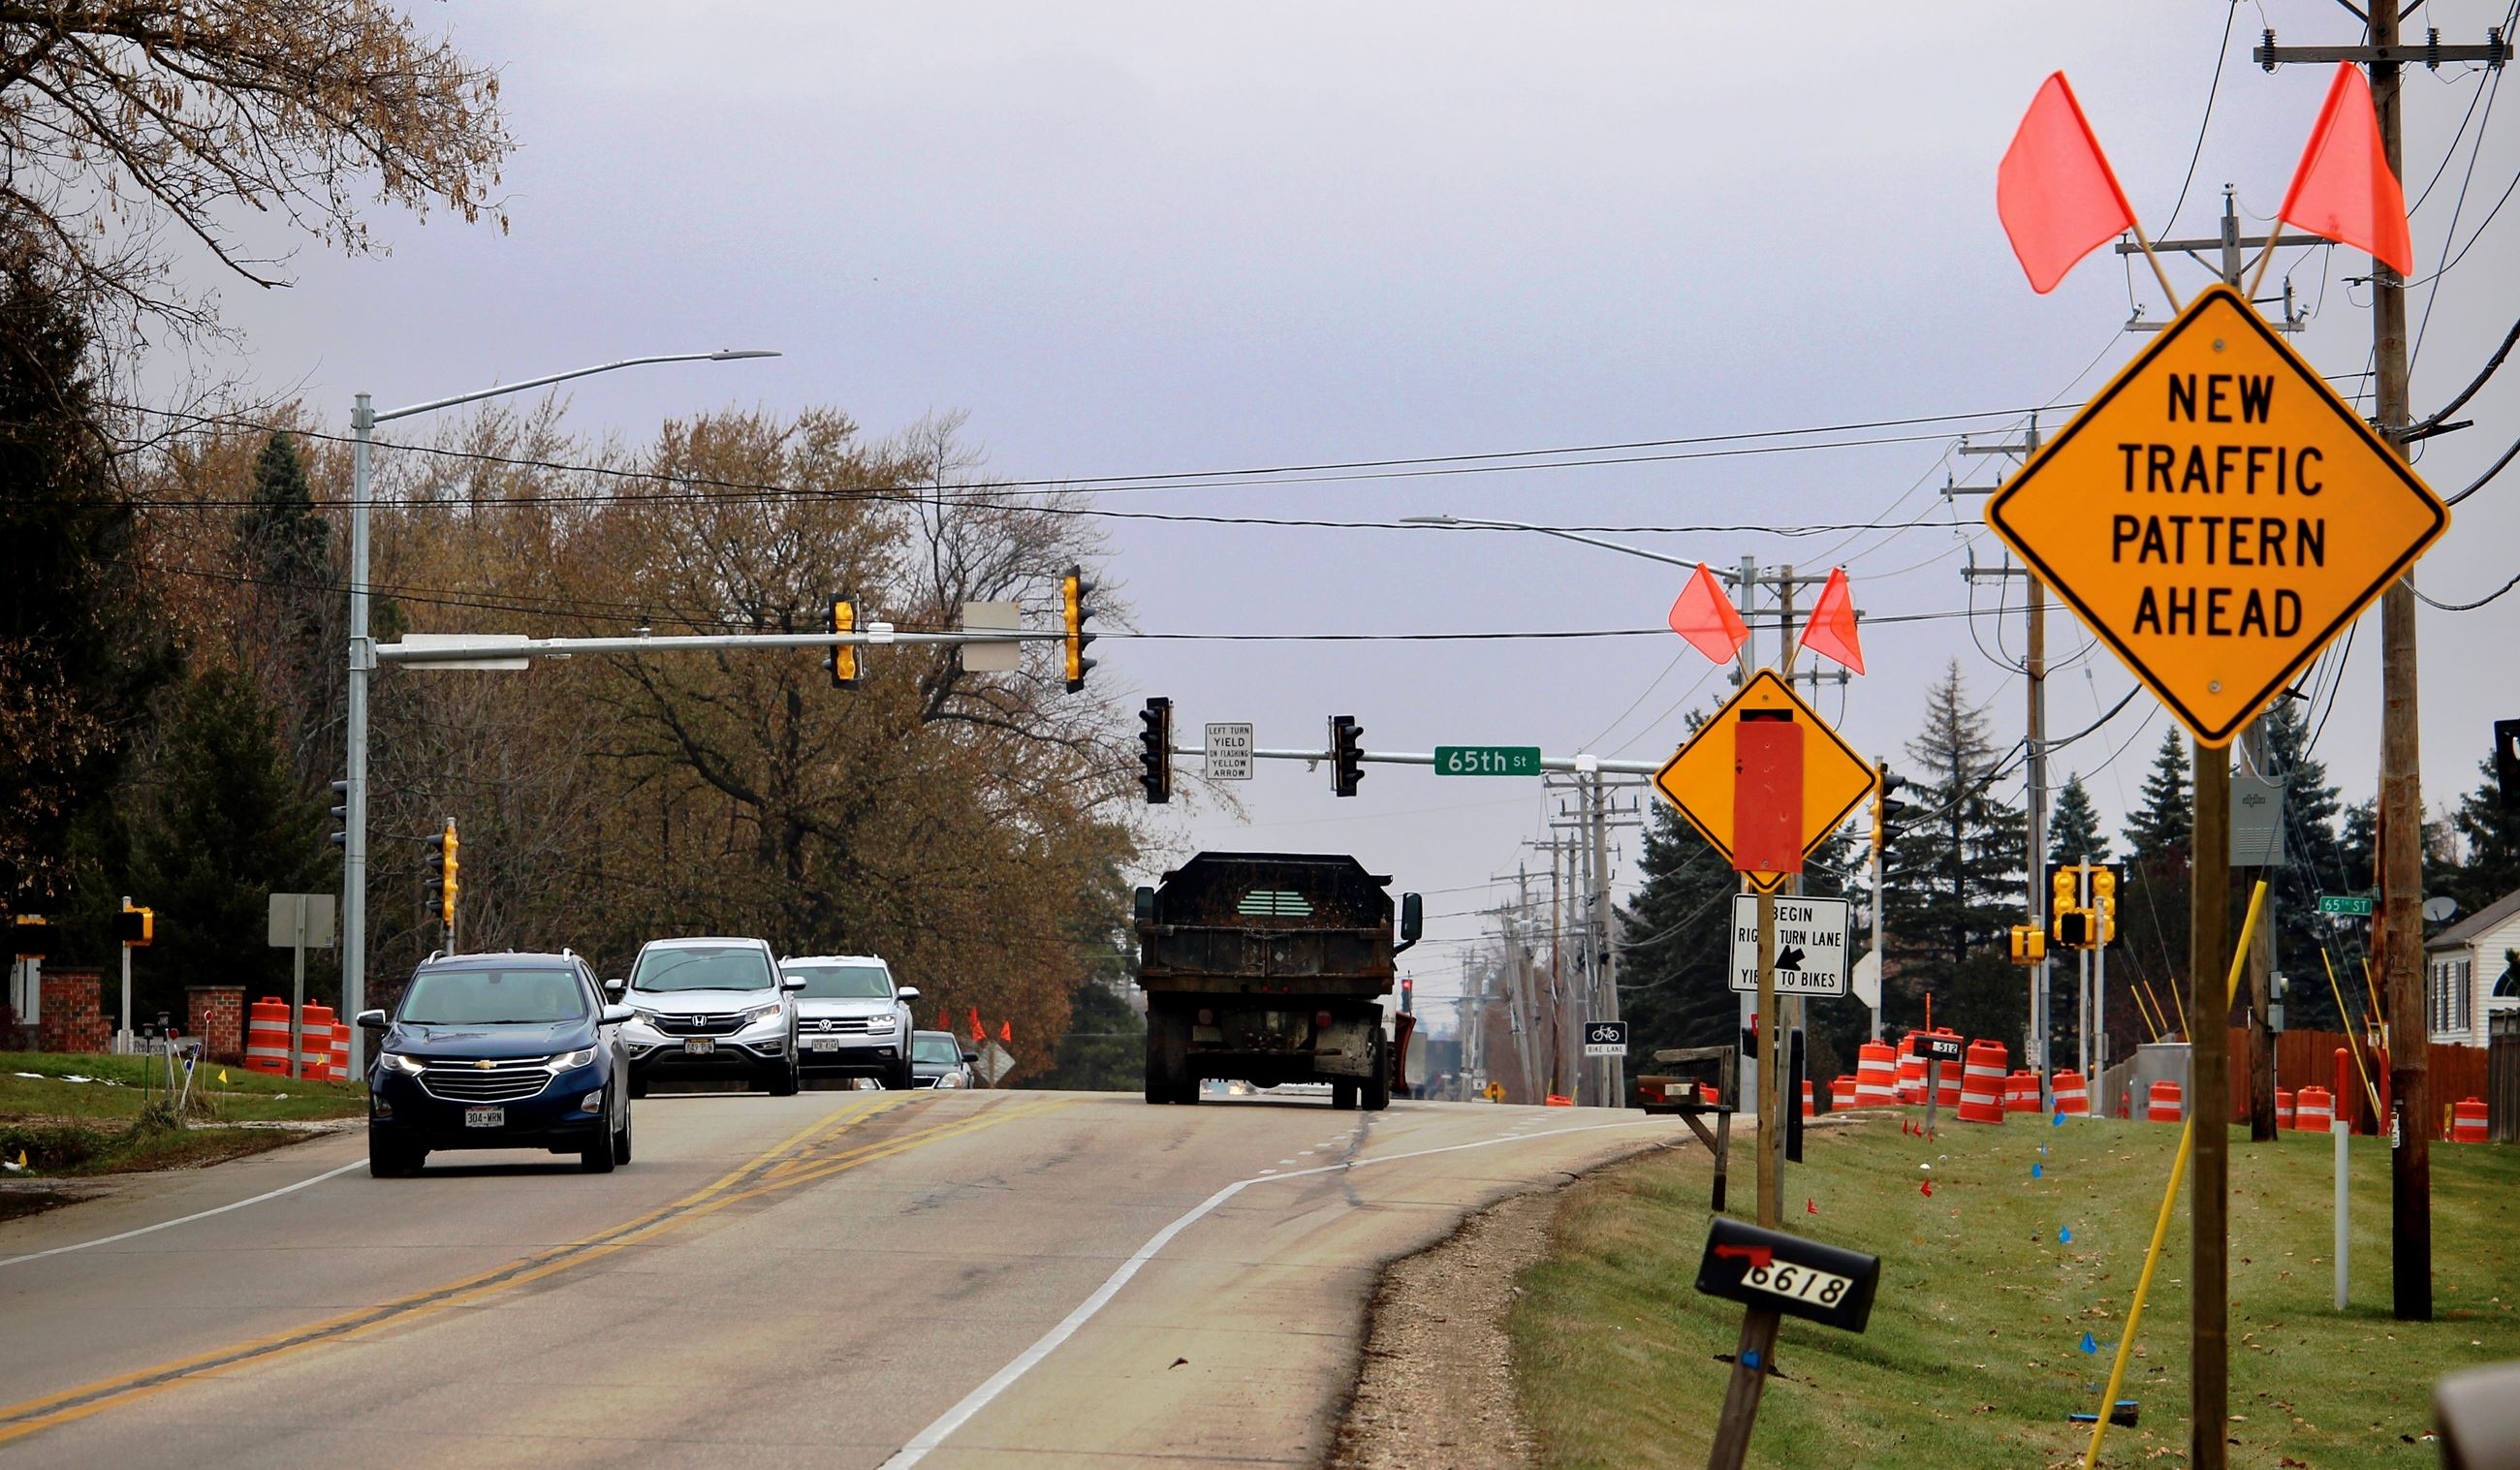 Highway H and 65th Street traffic signal